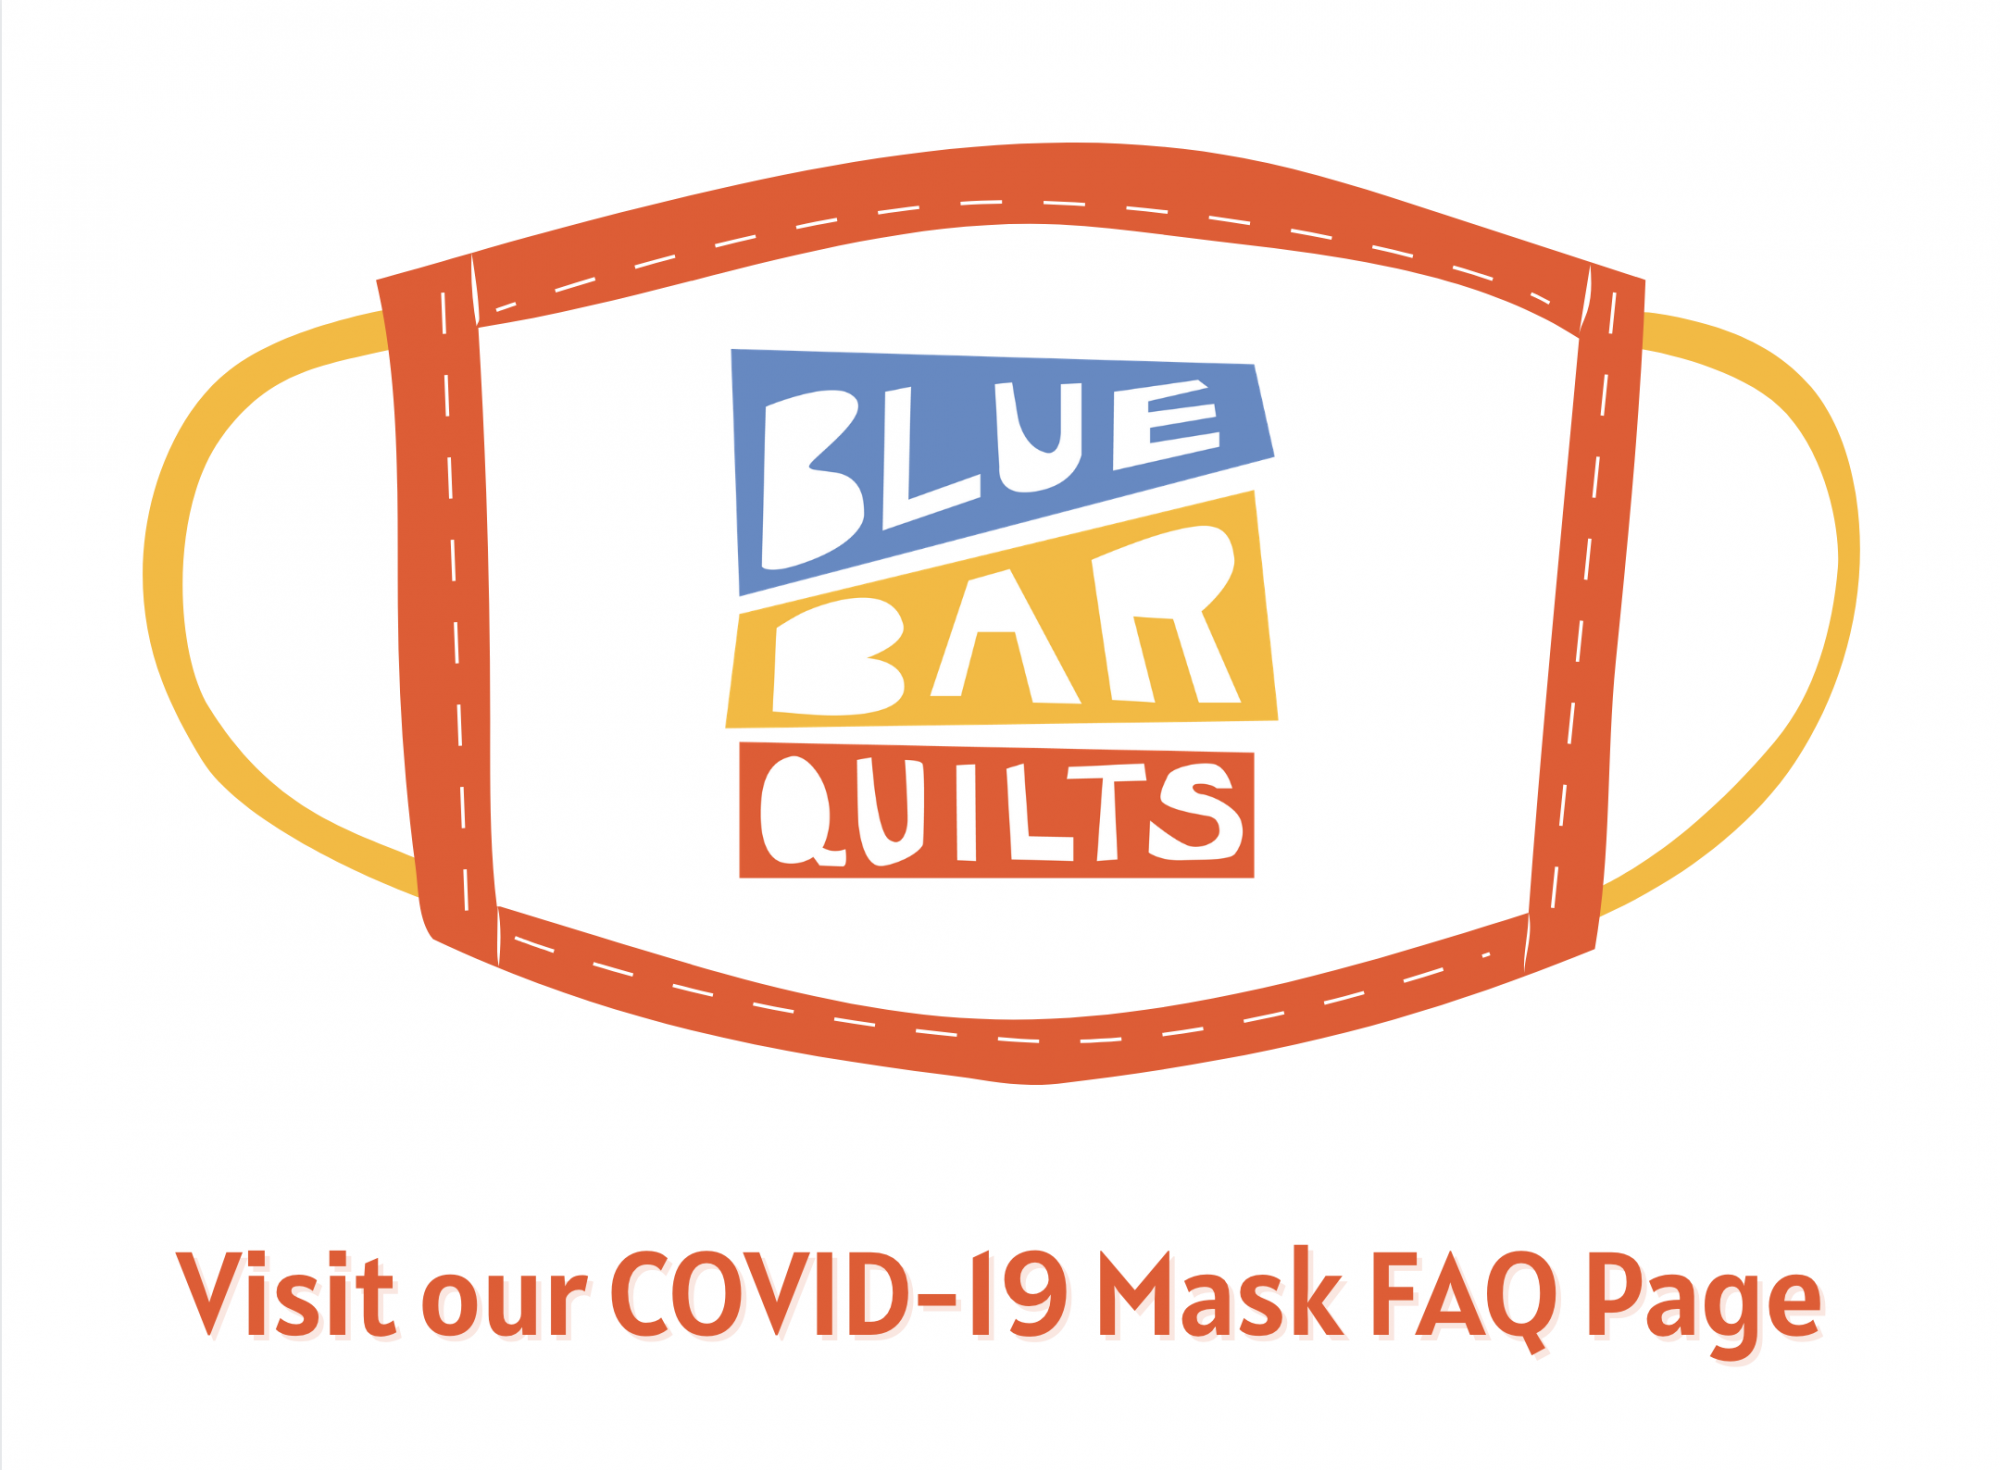 Blue Bar Quilts COVID-19 Mask FAQ